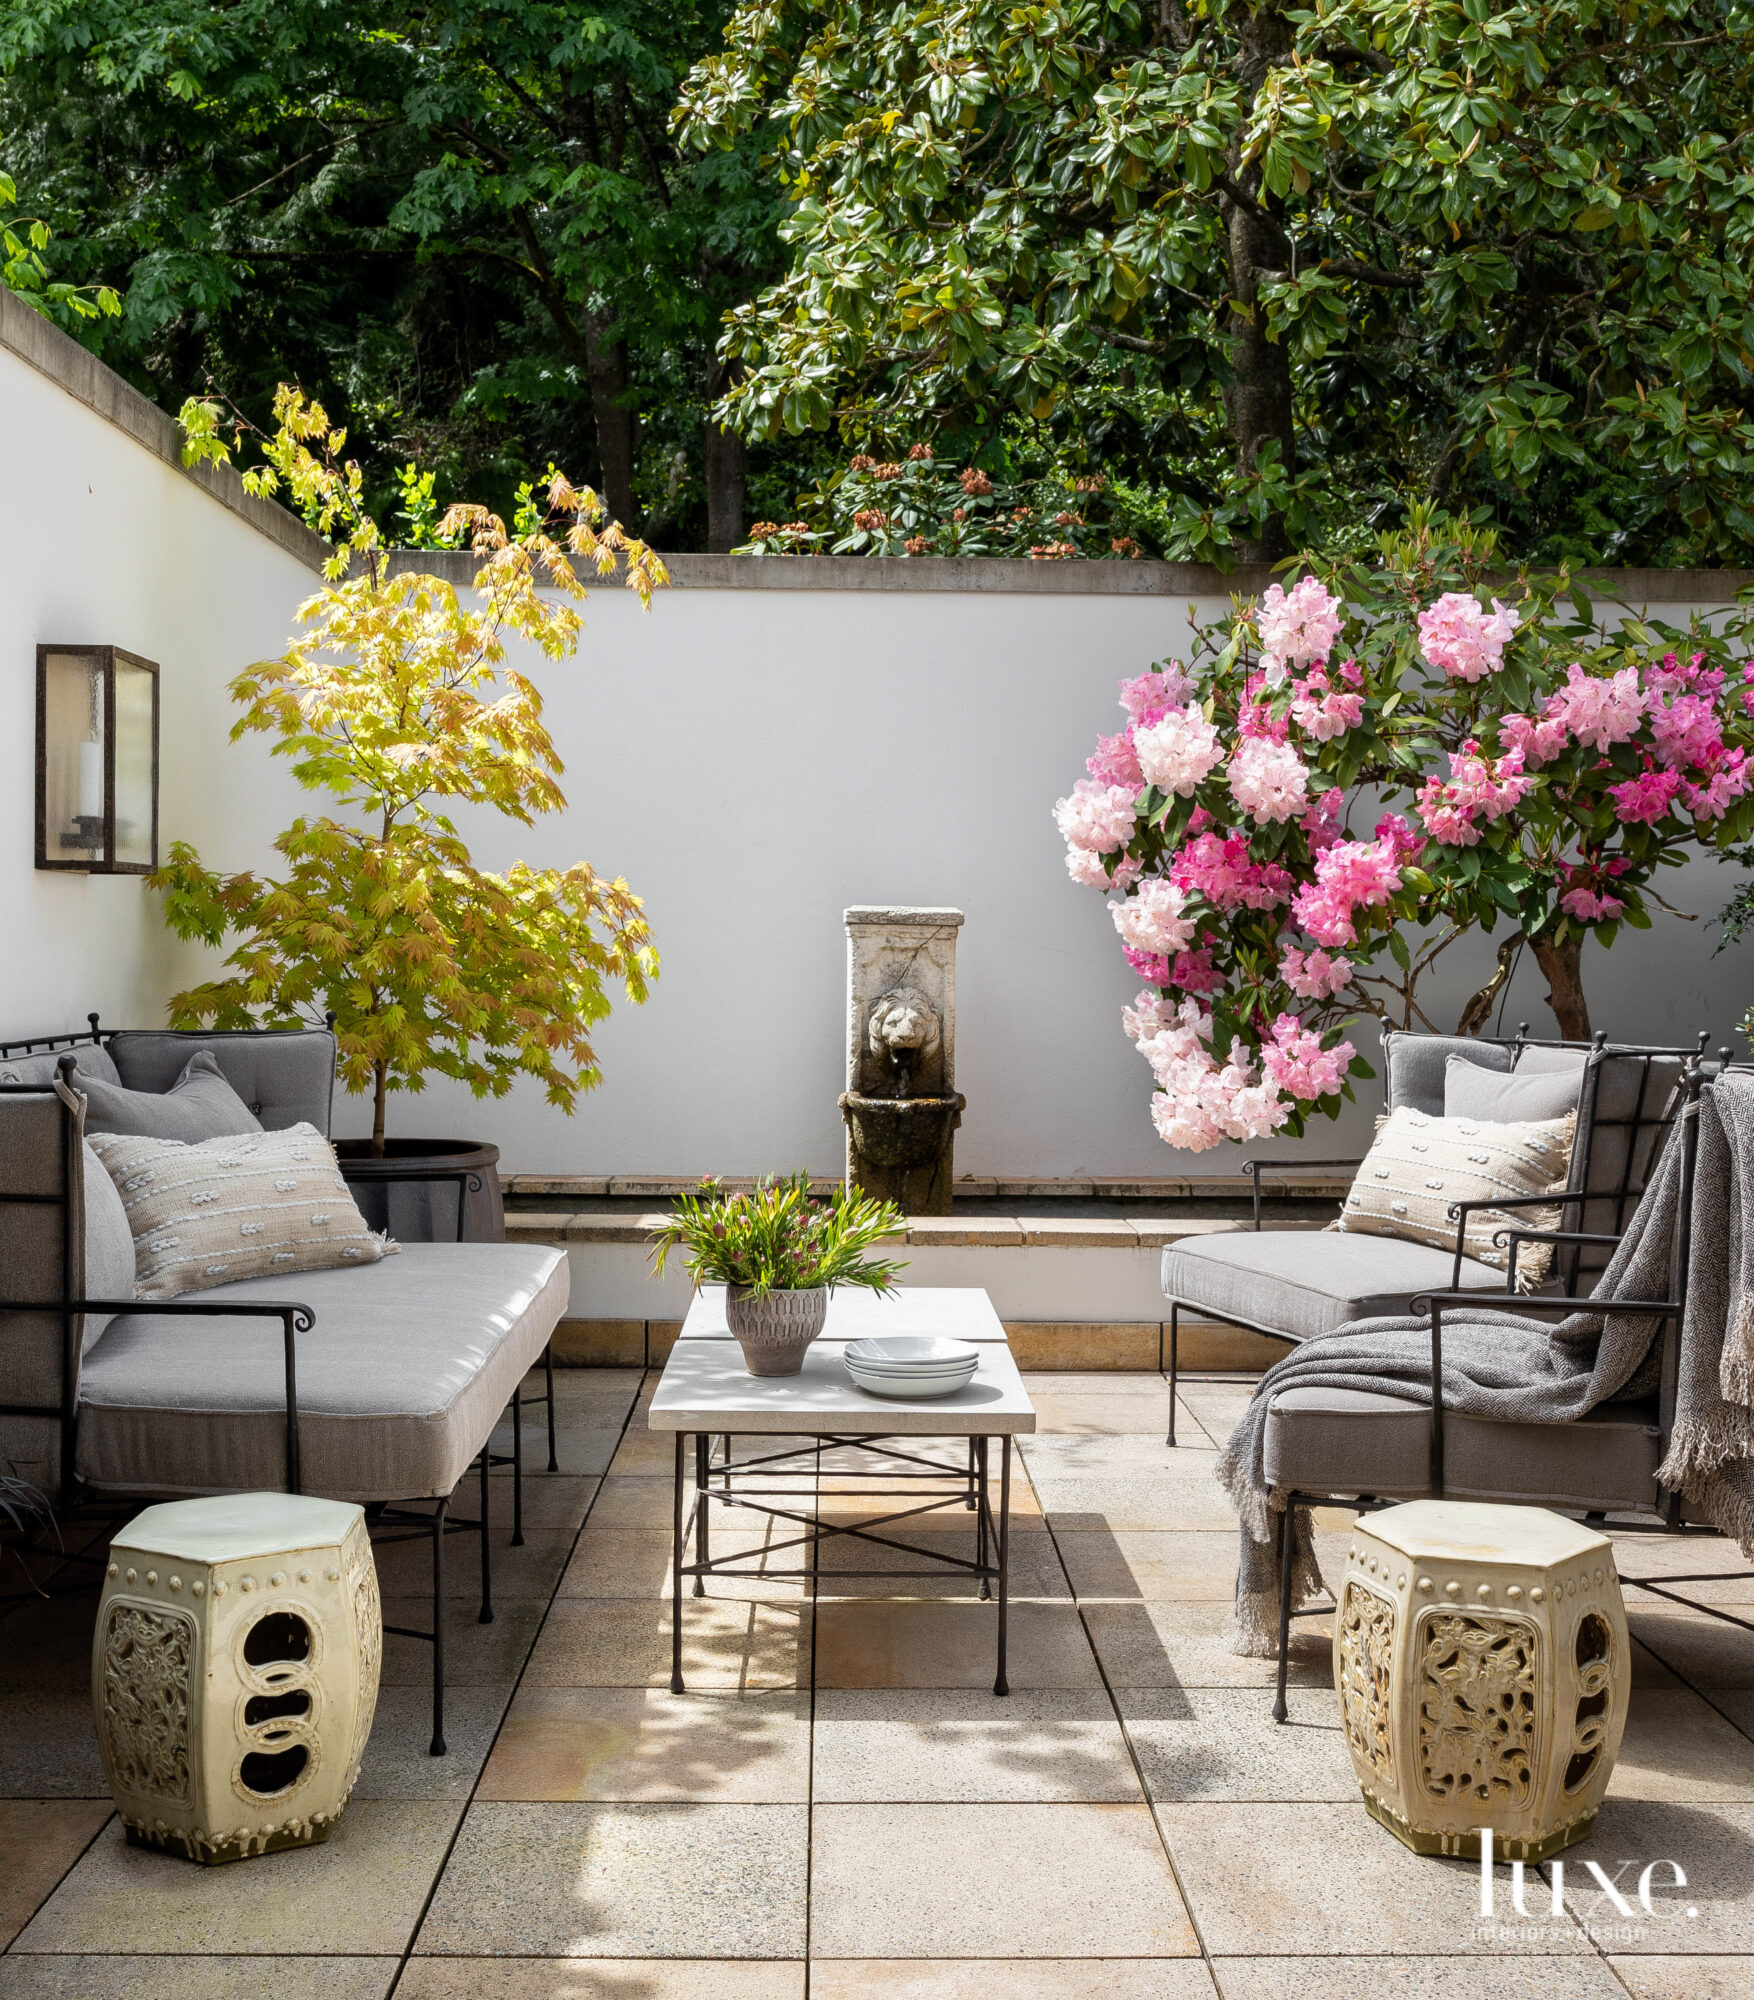 Outdoor seating area with sofa...